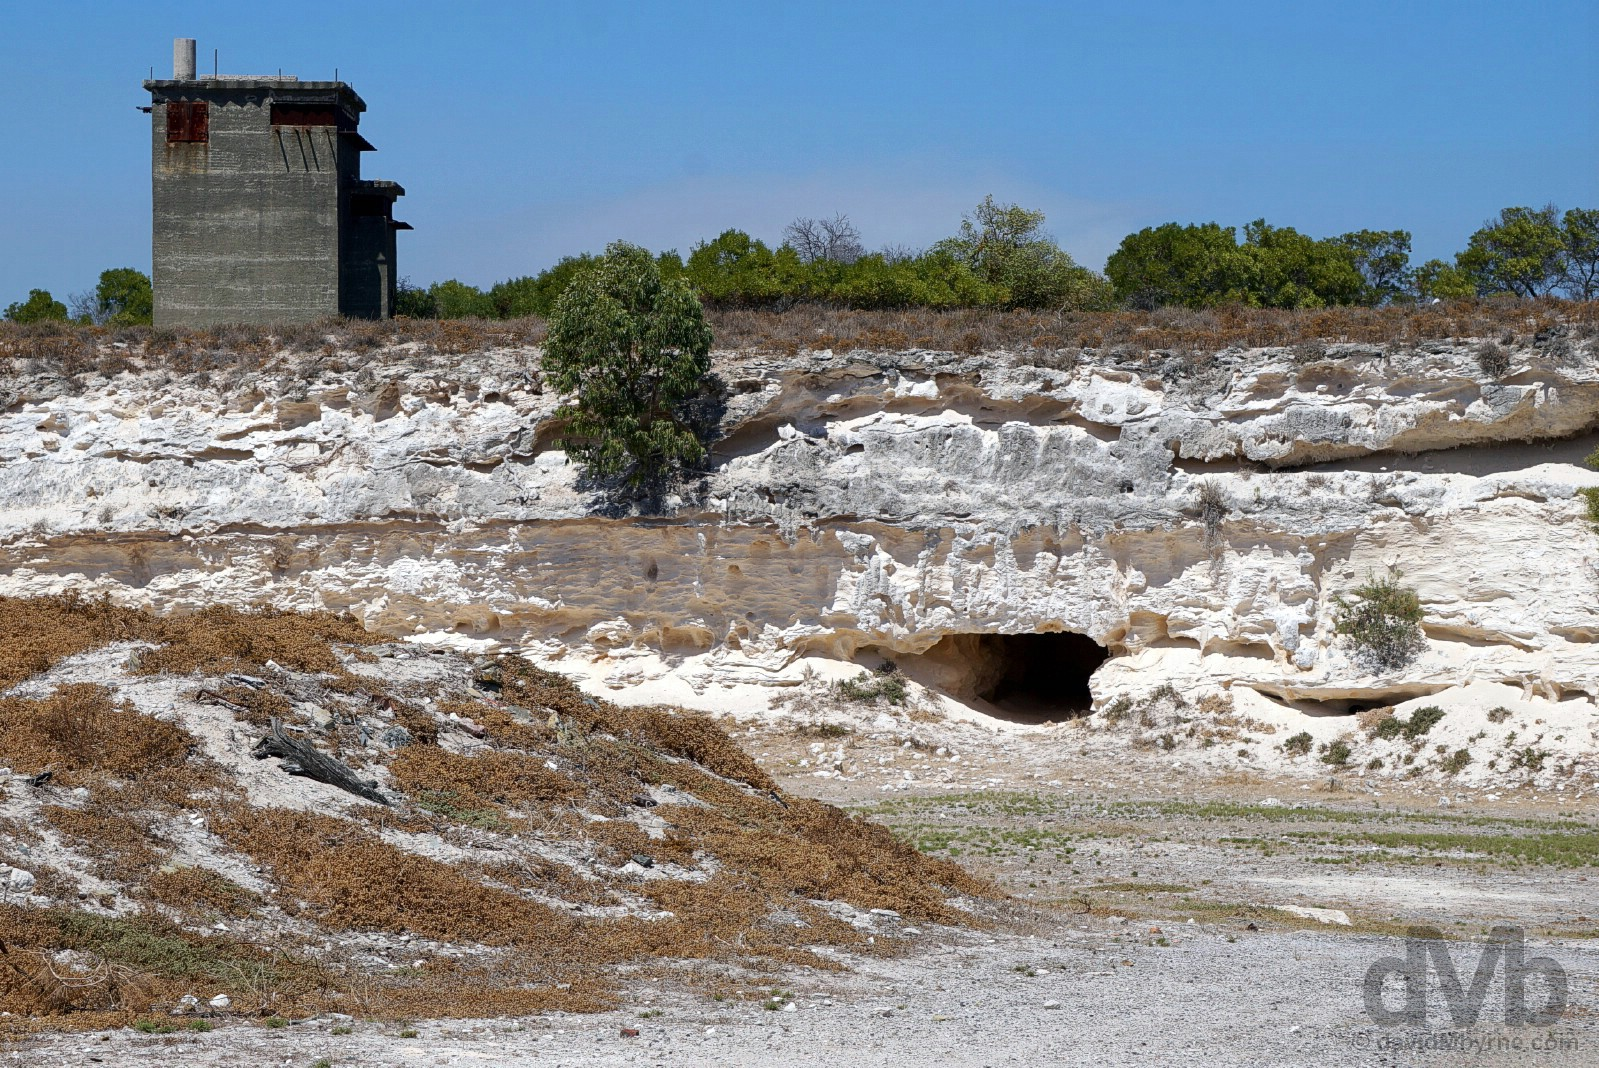 The Lime Quarry on Robben Island, Table Bay, Cape Town, Western Cape, South Africa. February 22, 2017.